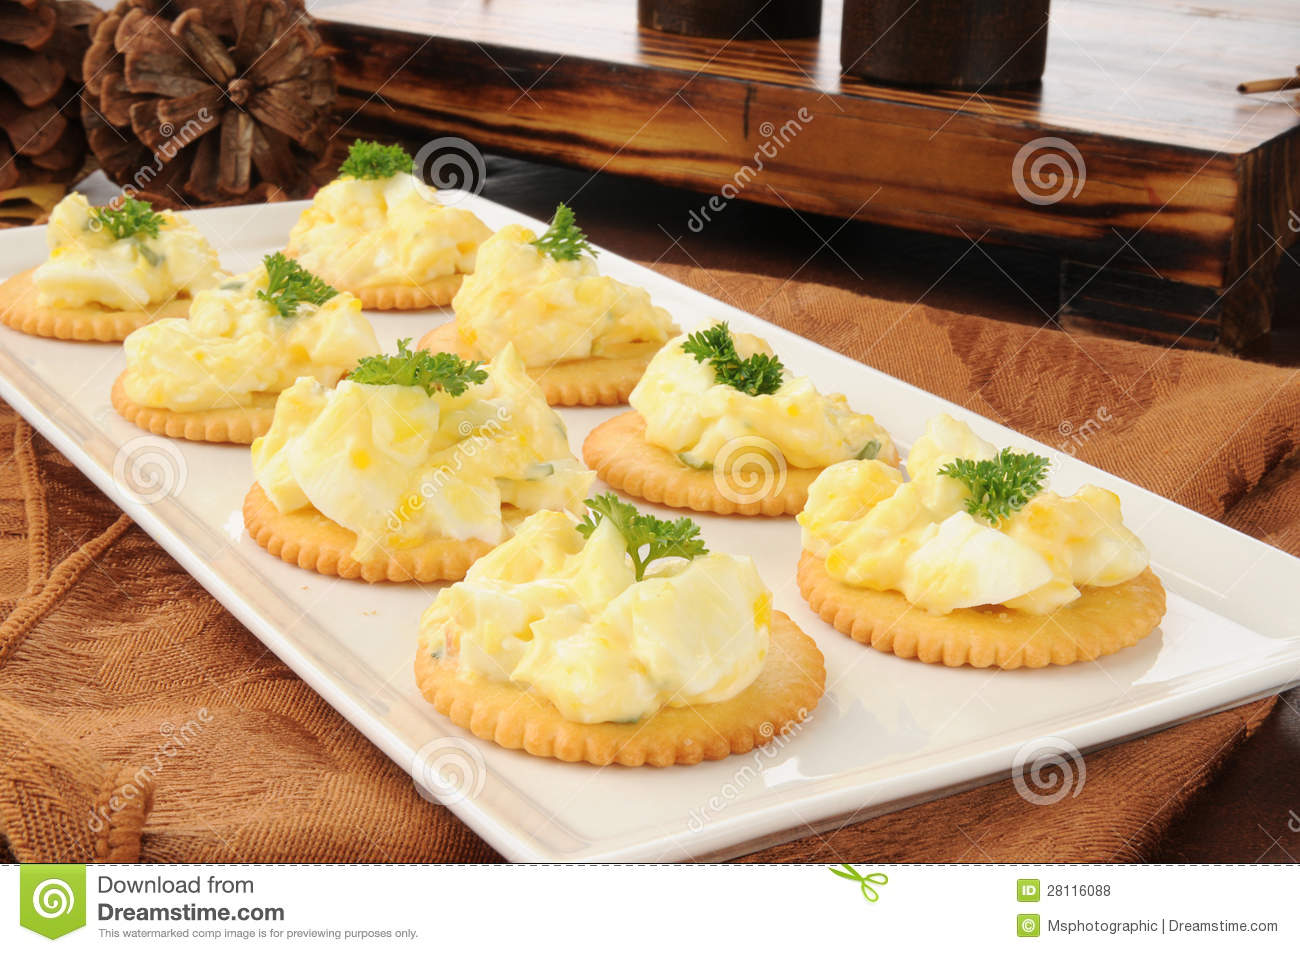 Deviled egg canapes stock photo image of food deviled for What is a canape appetizer